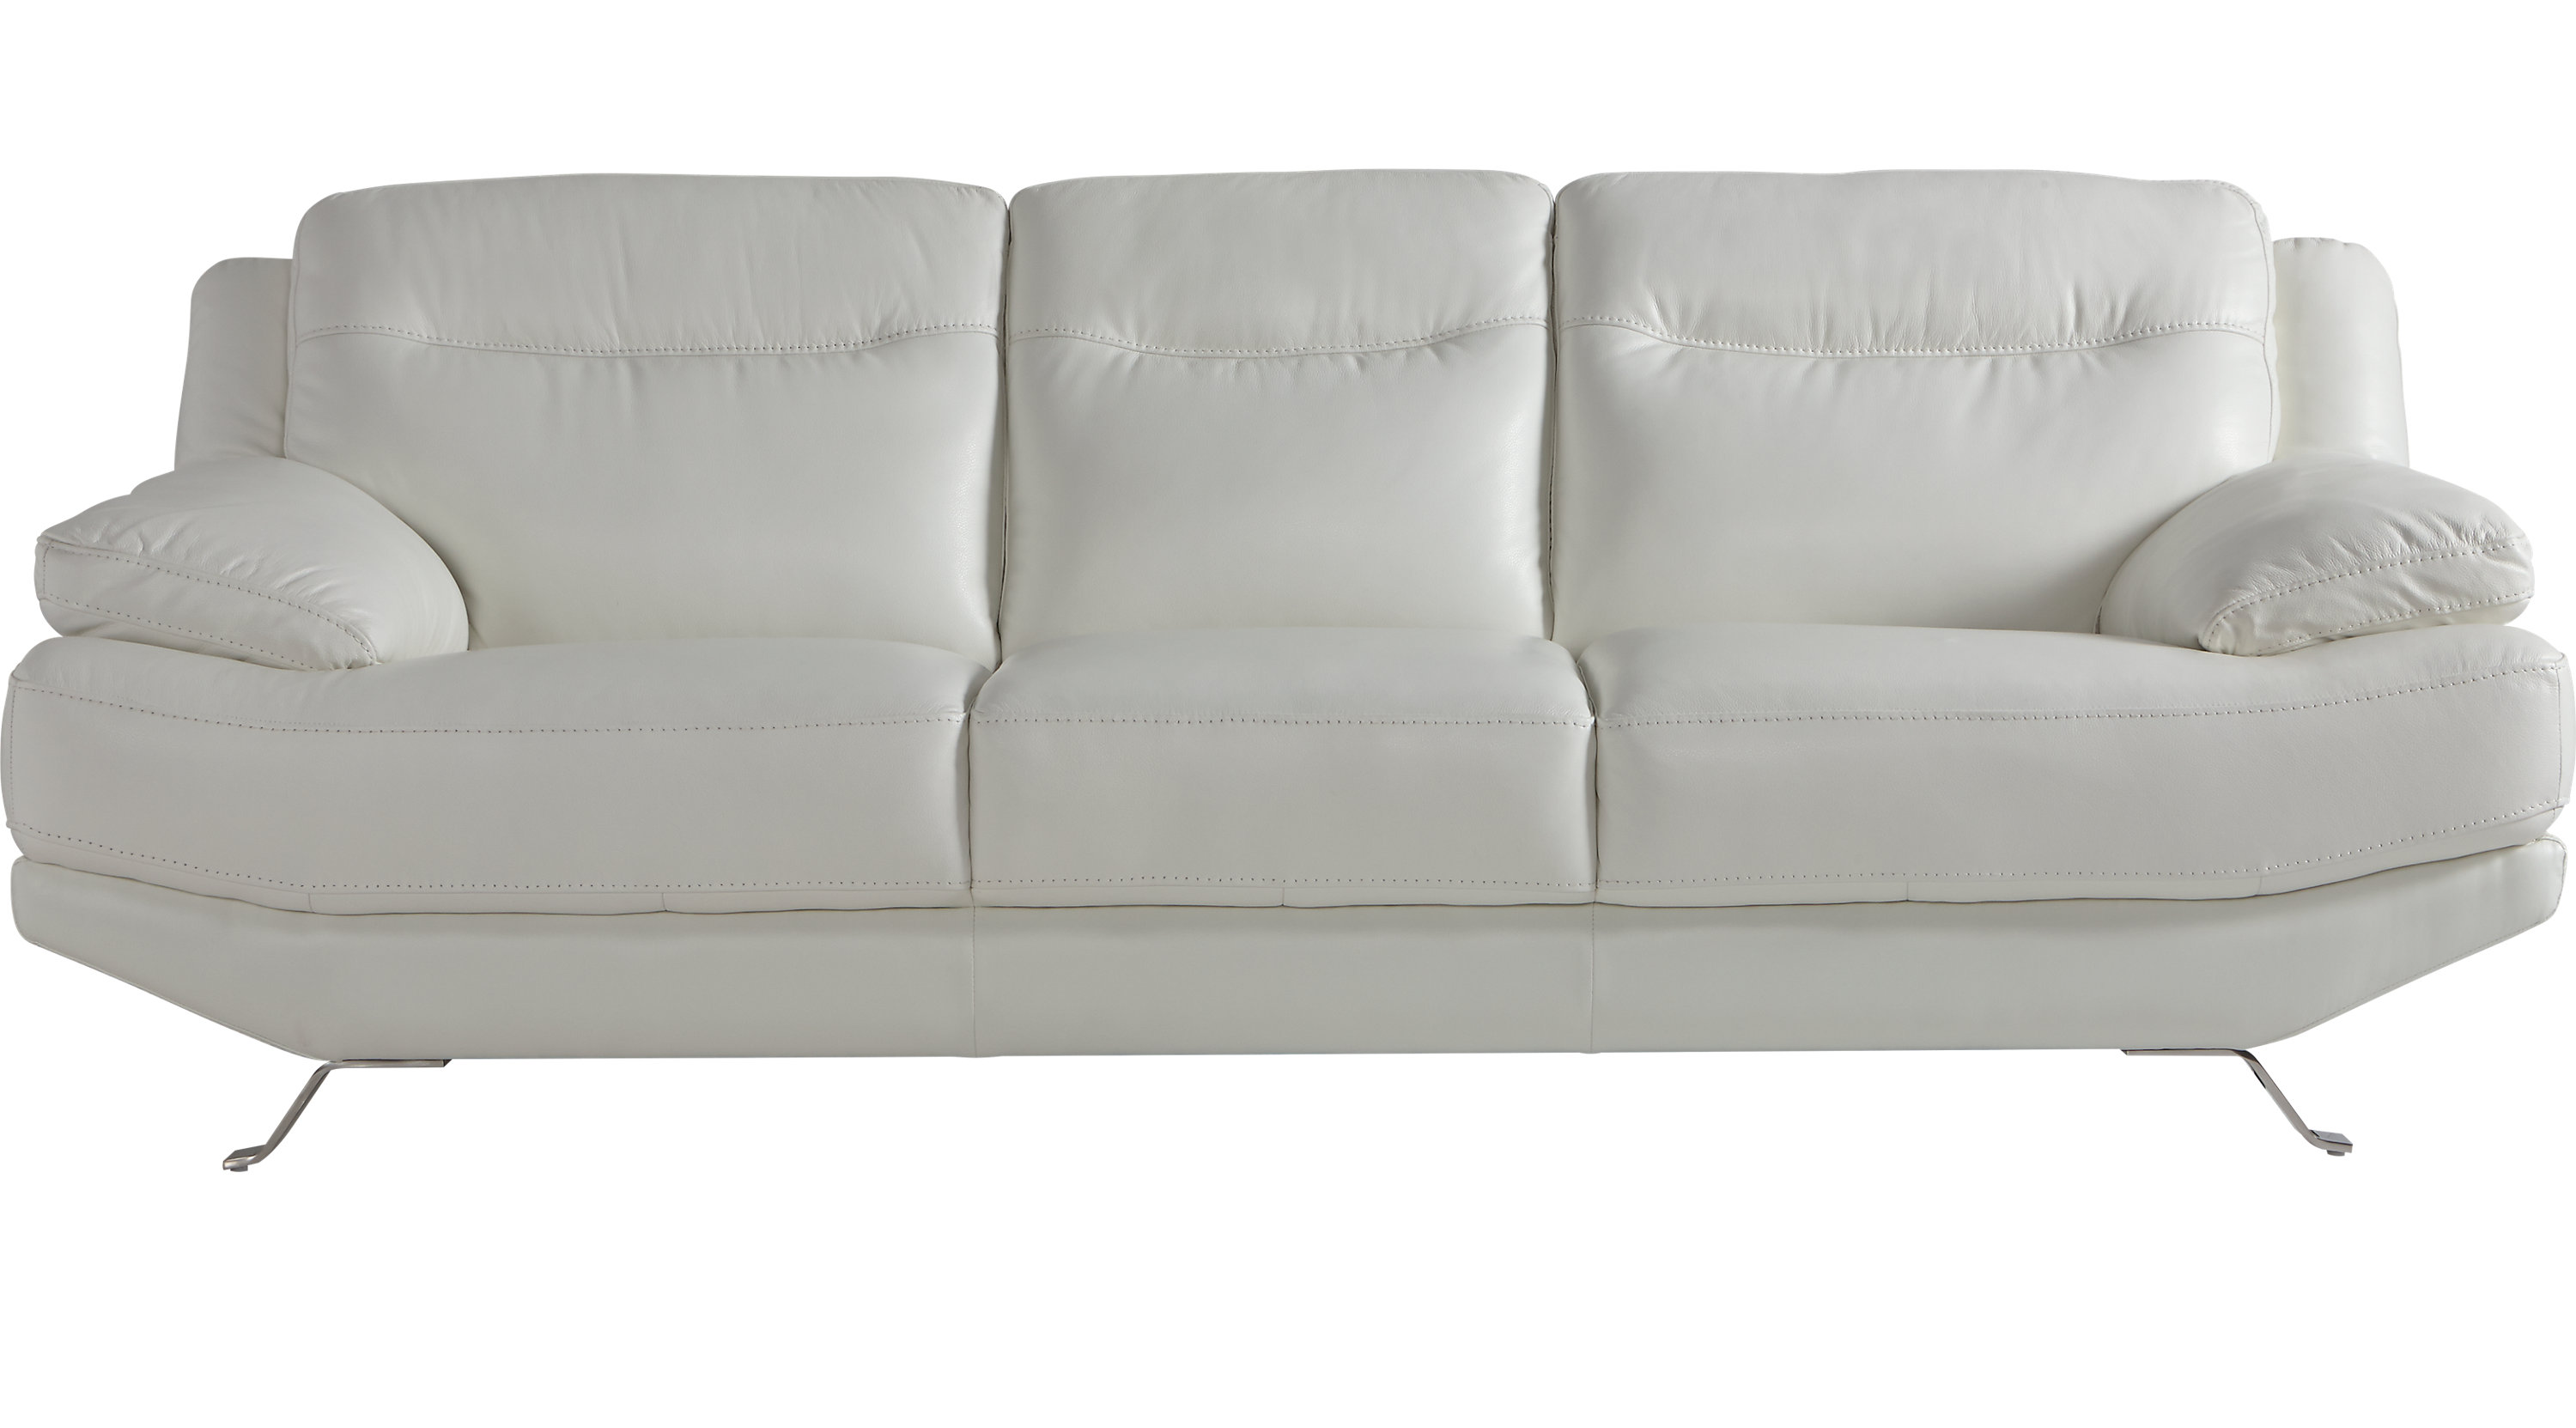 sofia vergara castilla white leather sofa. couches and sofas under